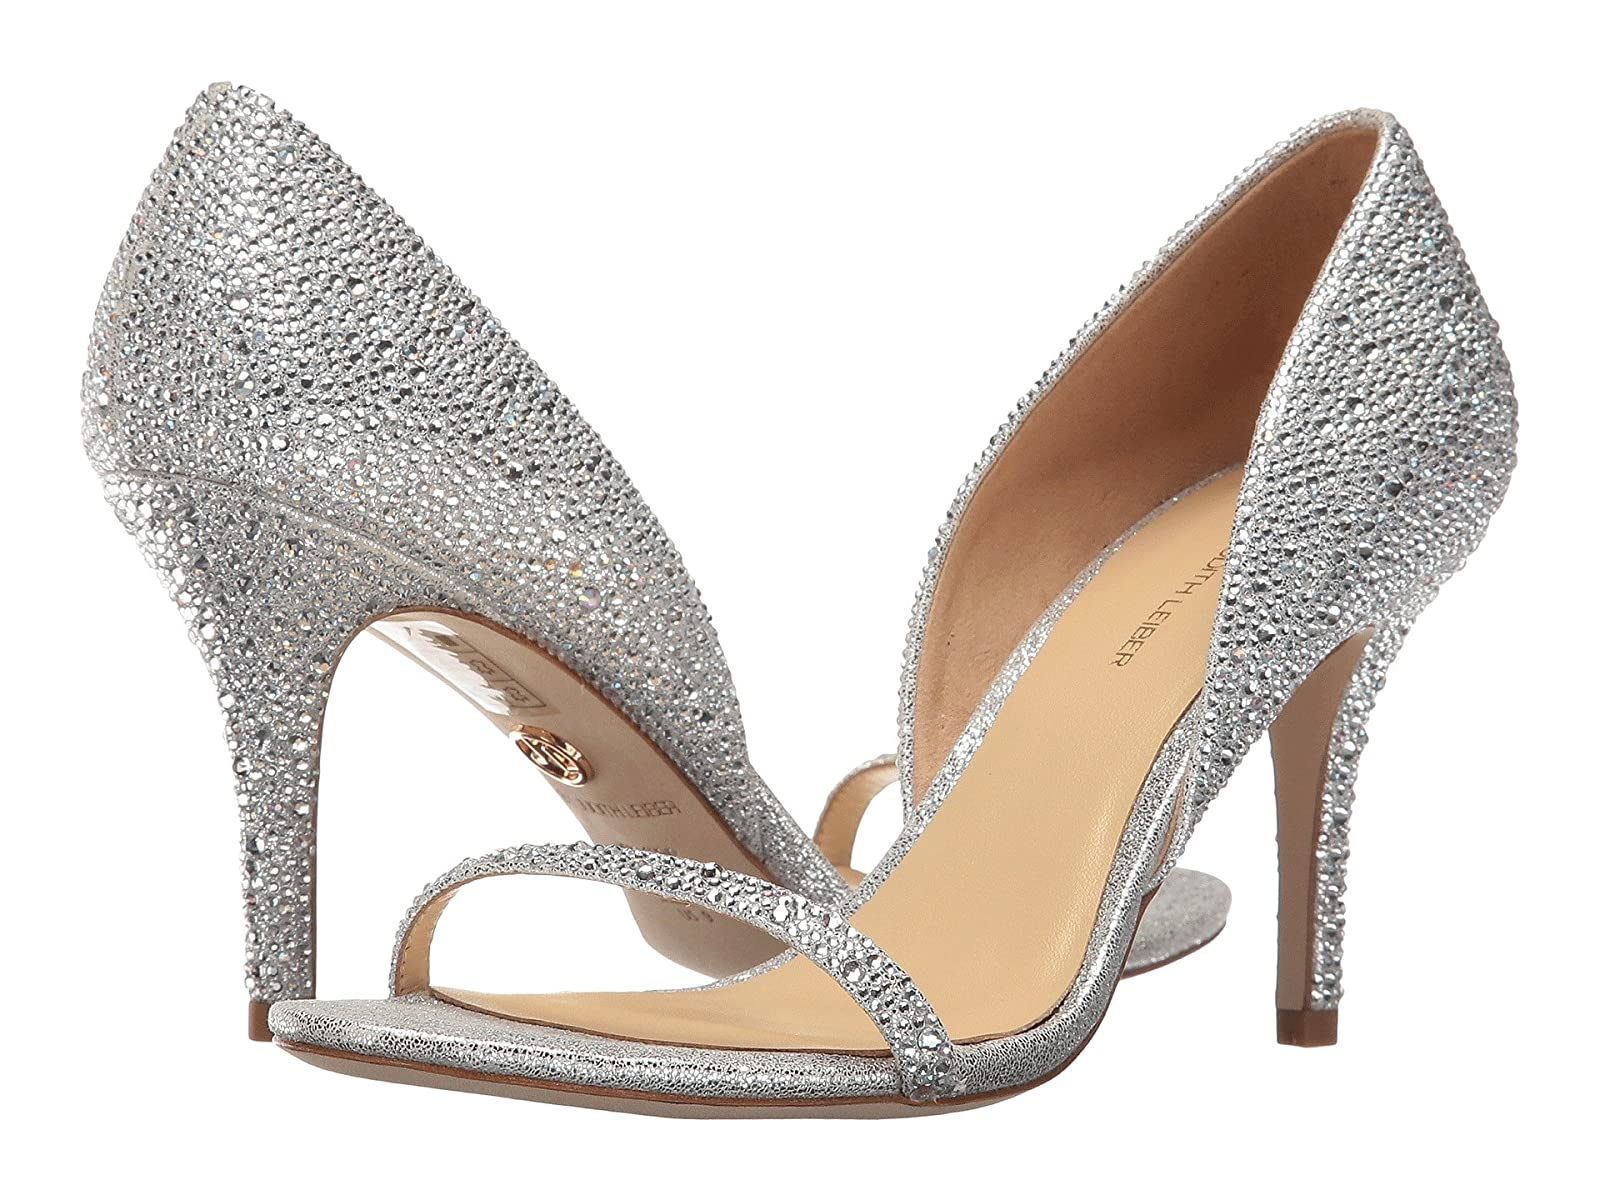 JL by Judith Leiber MichelaCheap and distinctive eye-catching shoes